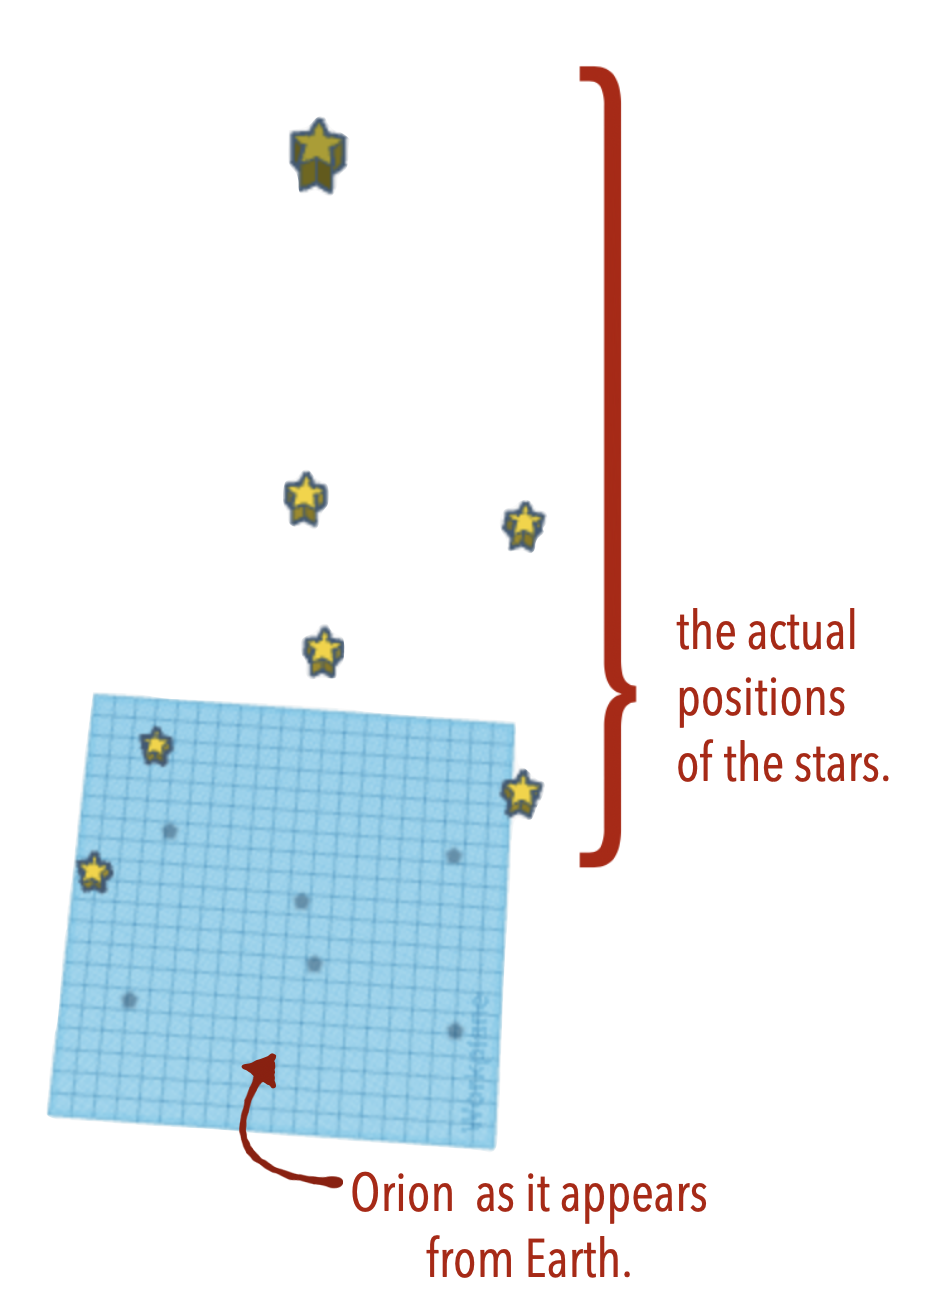 Second Example of Distances to Stars - the Constellation Orion